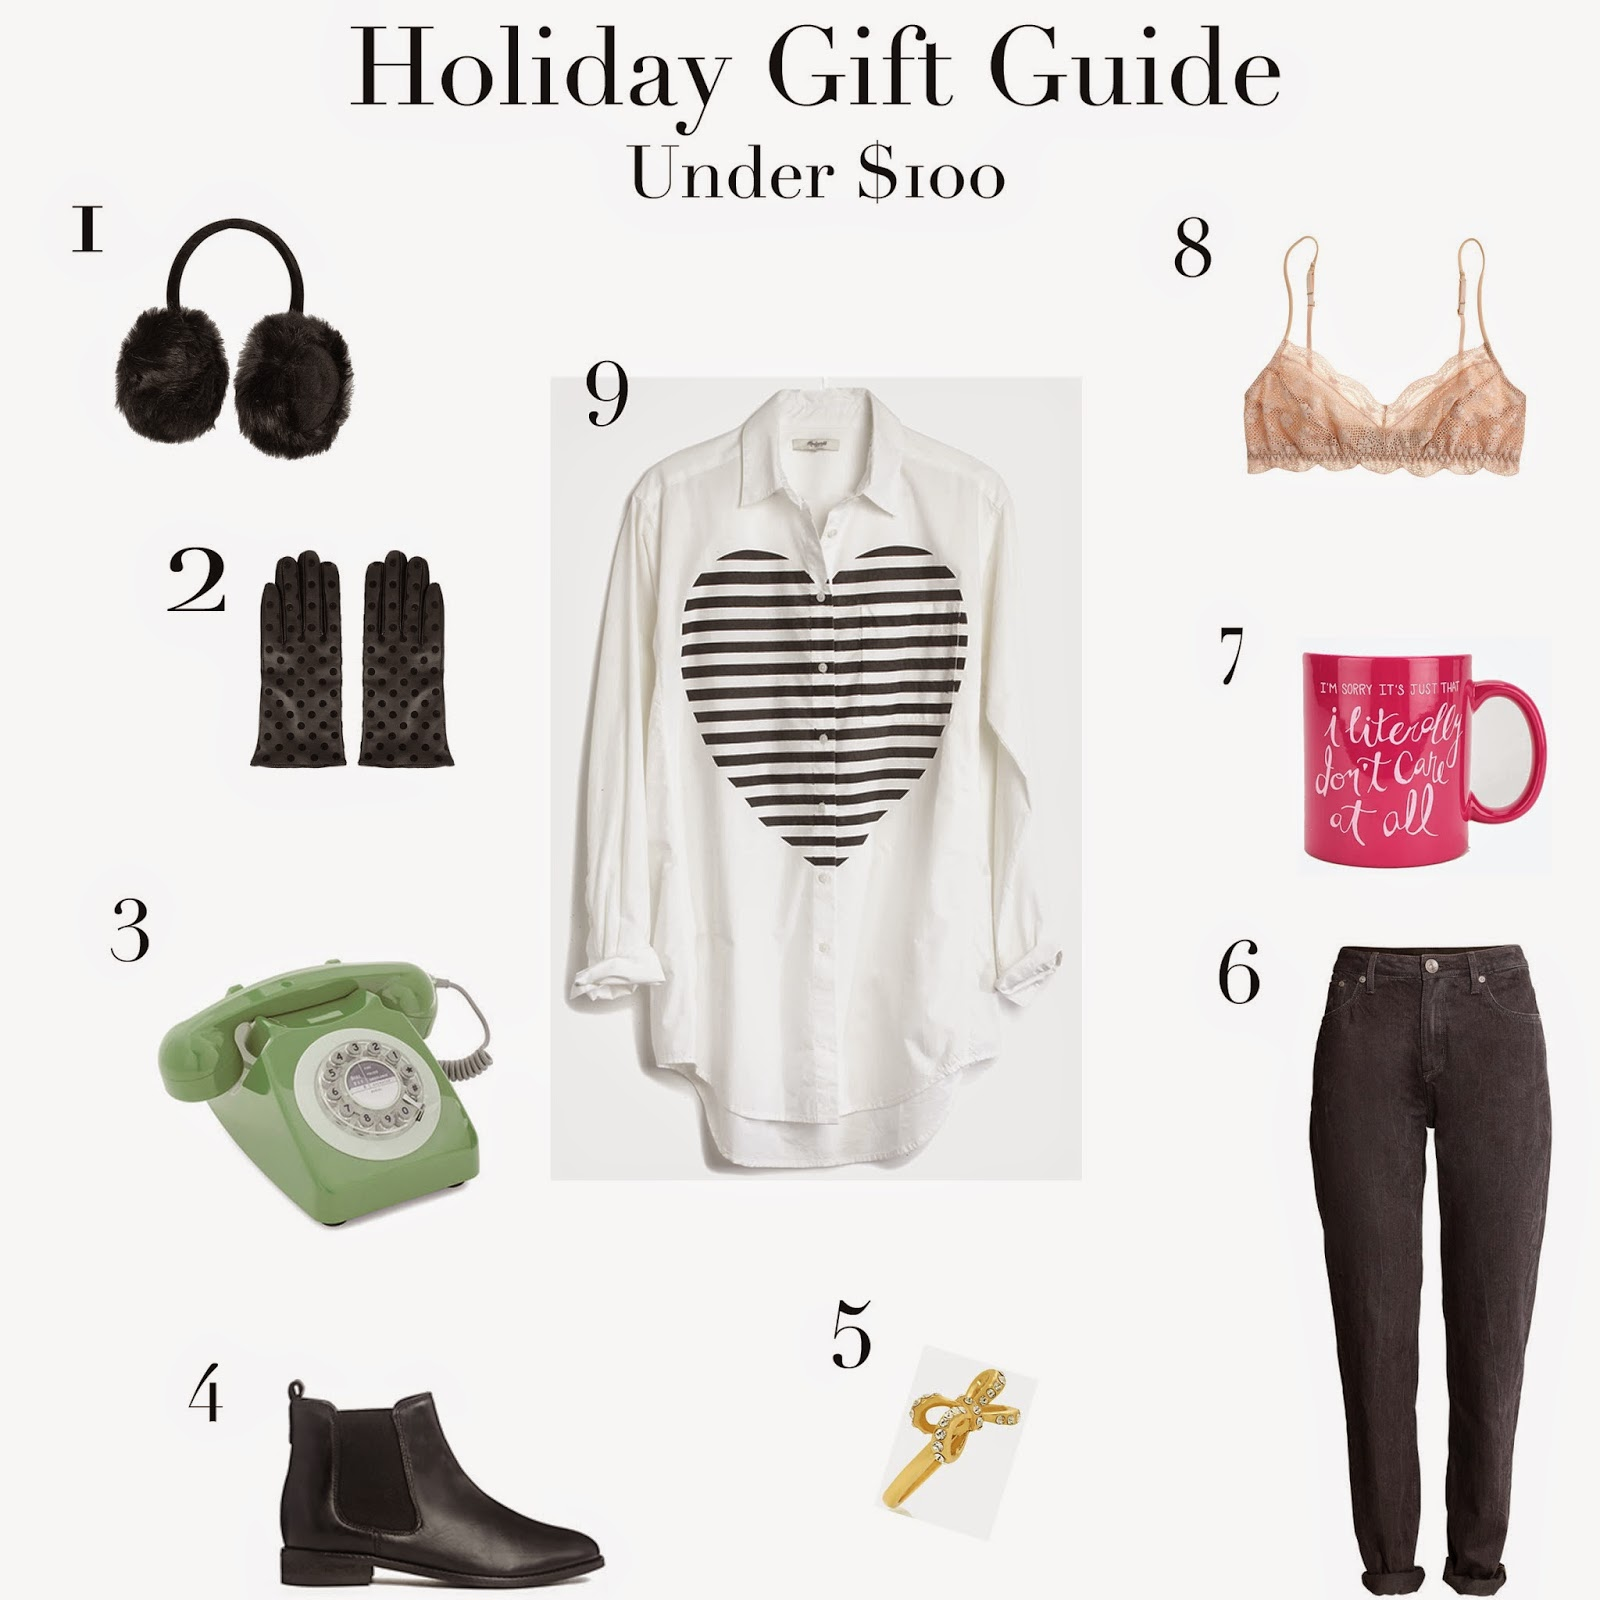 Holiday Gift Guide: Under $100